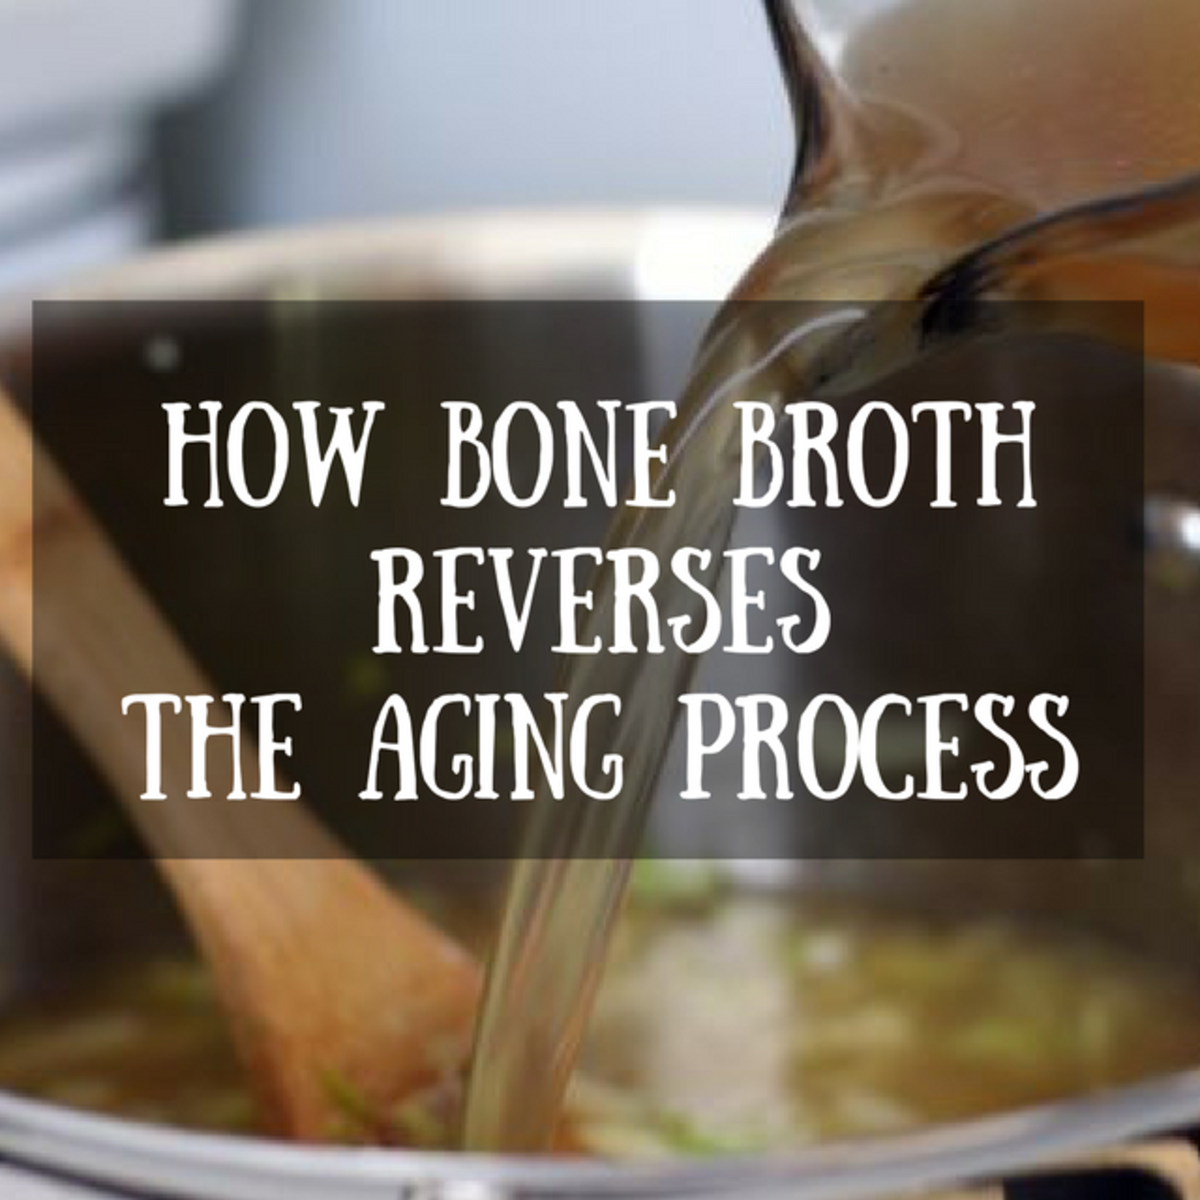 How Bone Broth Helps Reverse the Aging Process